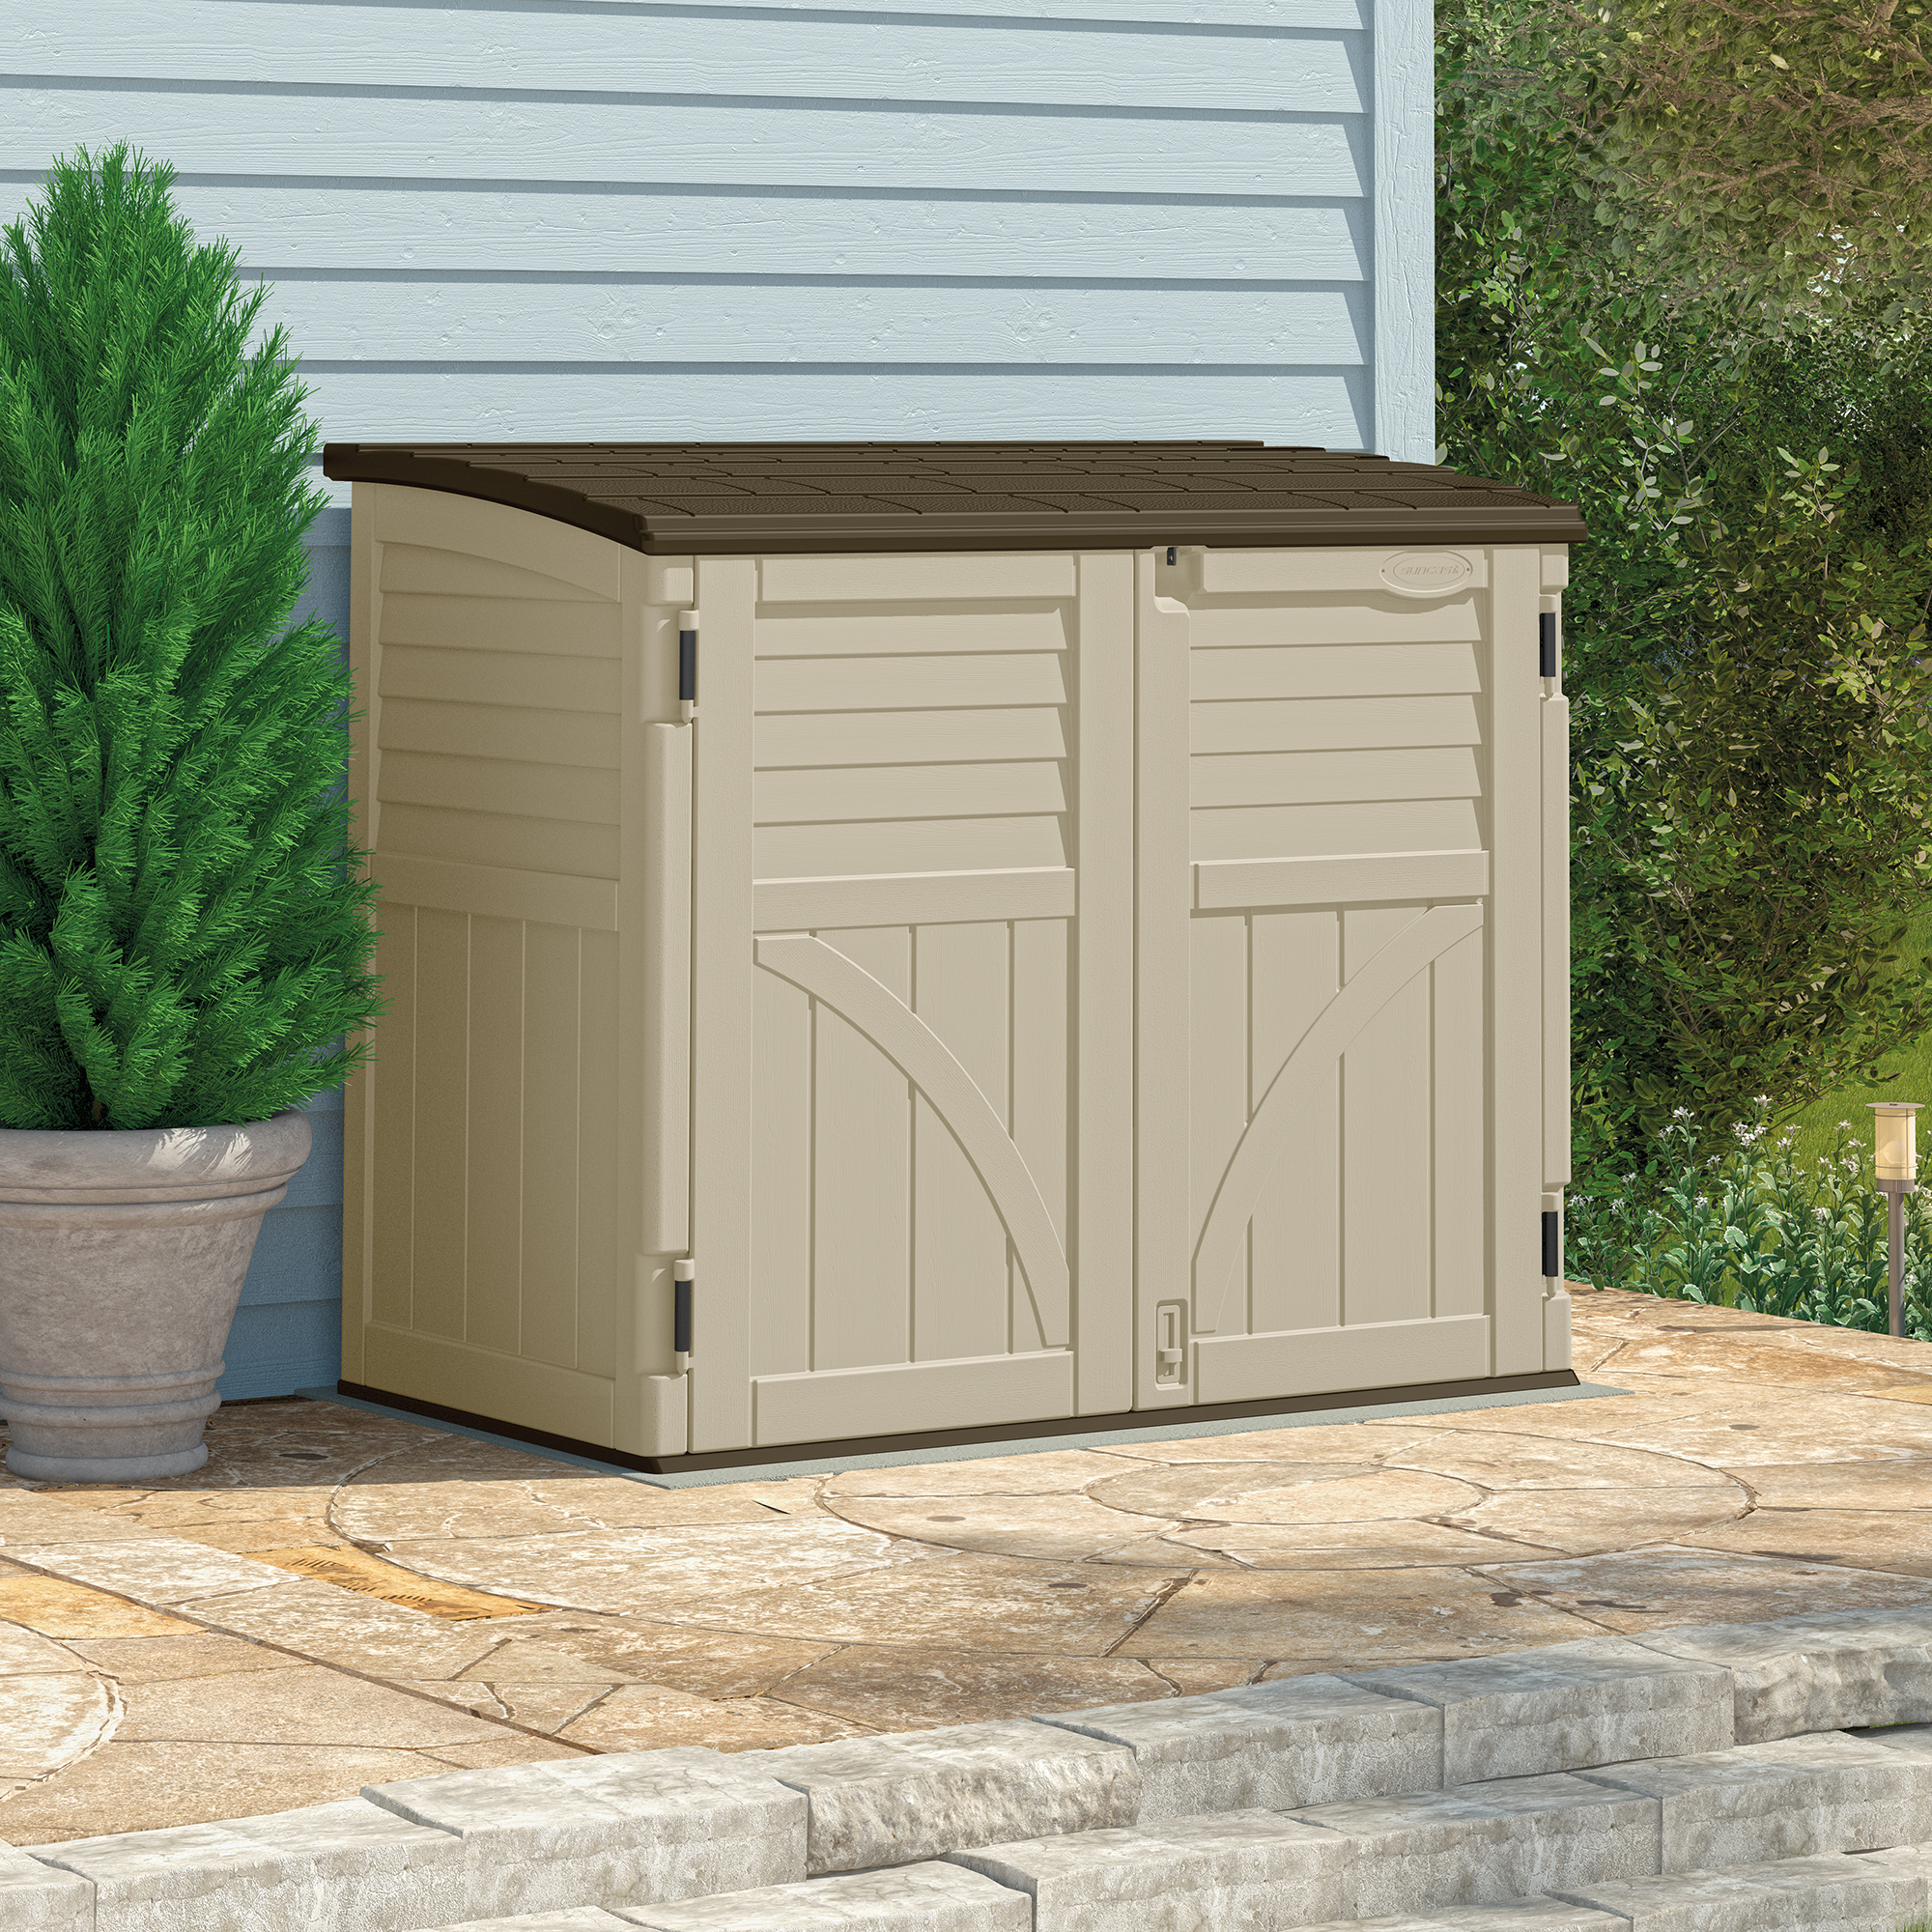 plastic sheds for sale buy plastic garden shed uk